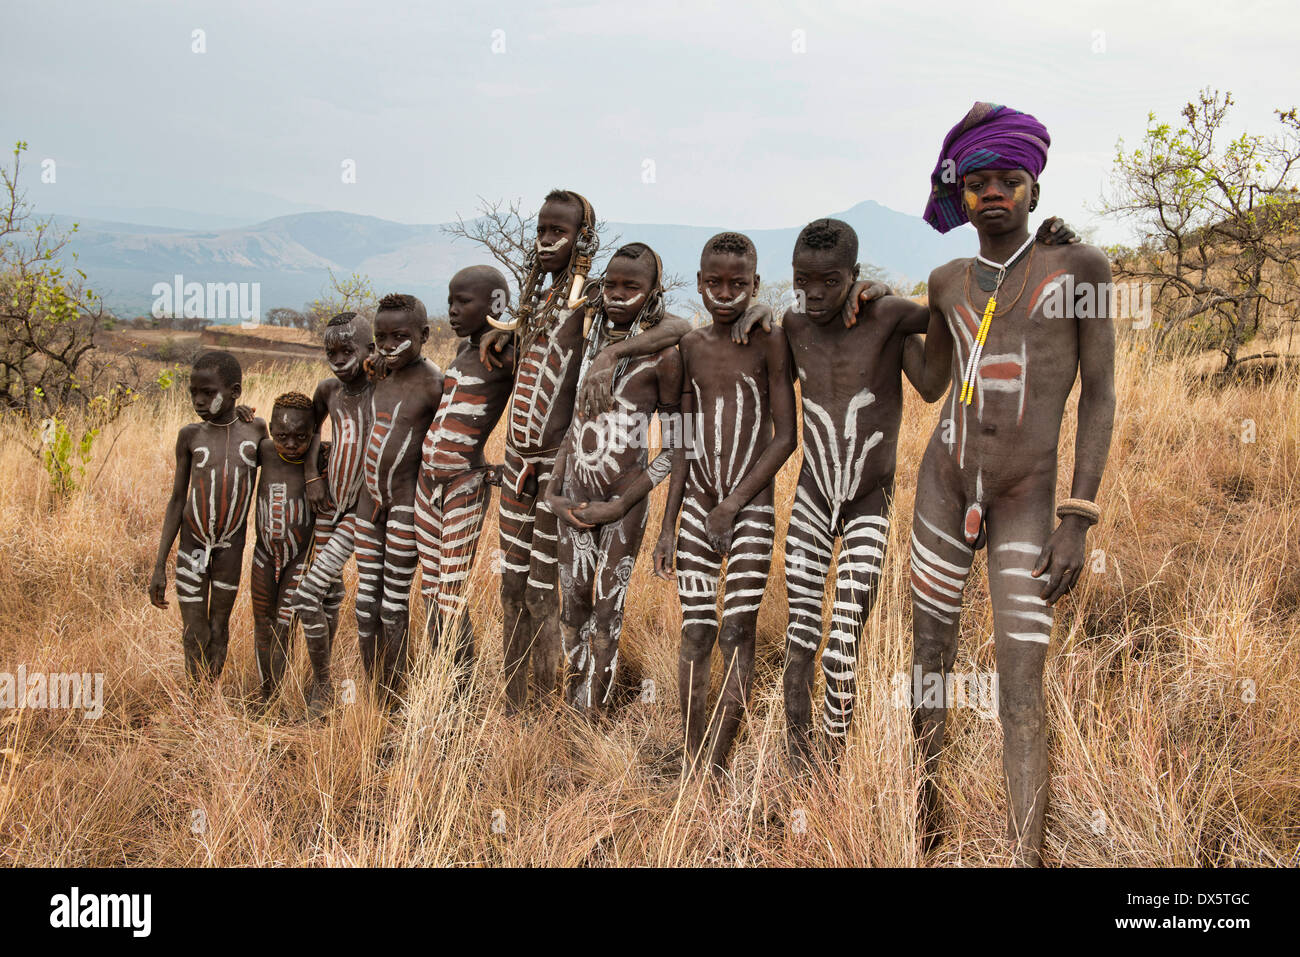 mursi Boy ... painted Mursi boys in Mago National Park, Lower Omo Valley of Ethiopia  - Stock Photo